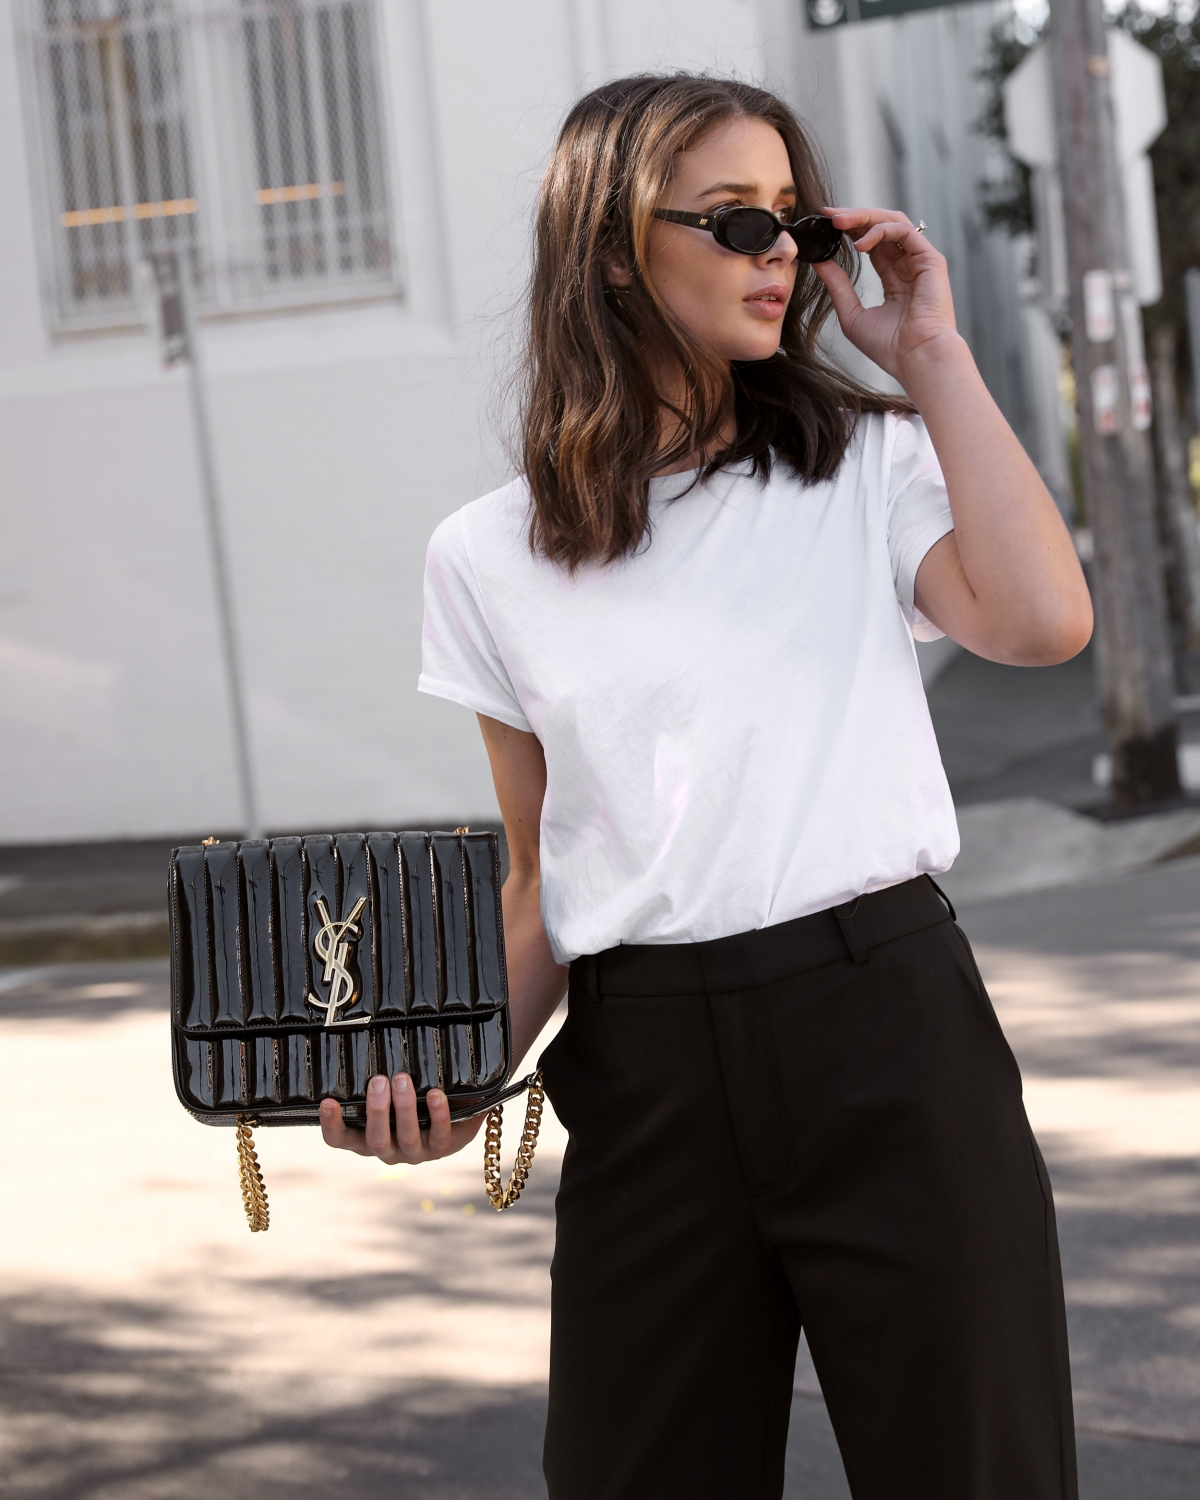 Saint Laurent Vicky Bag in black patent from Selfridges | Small sunglasses trend | HarperandHarley